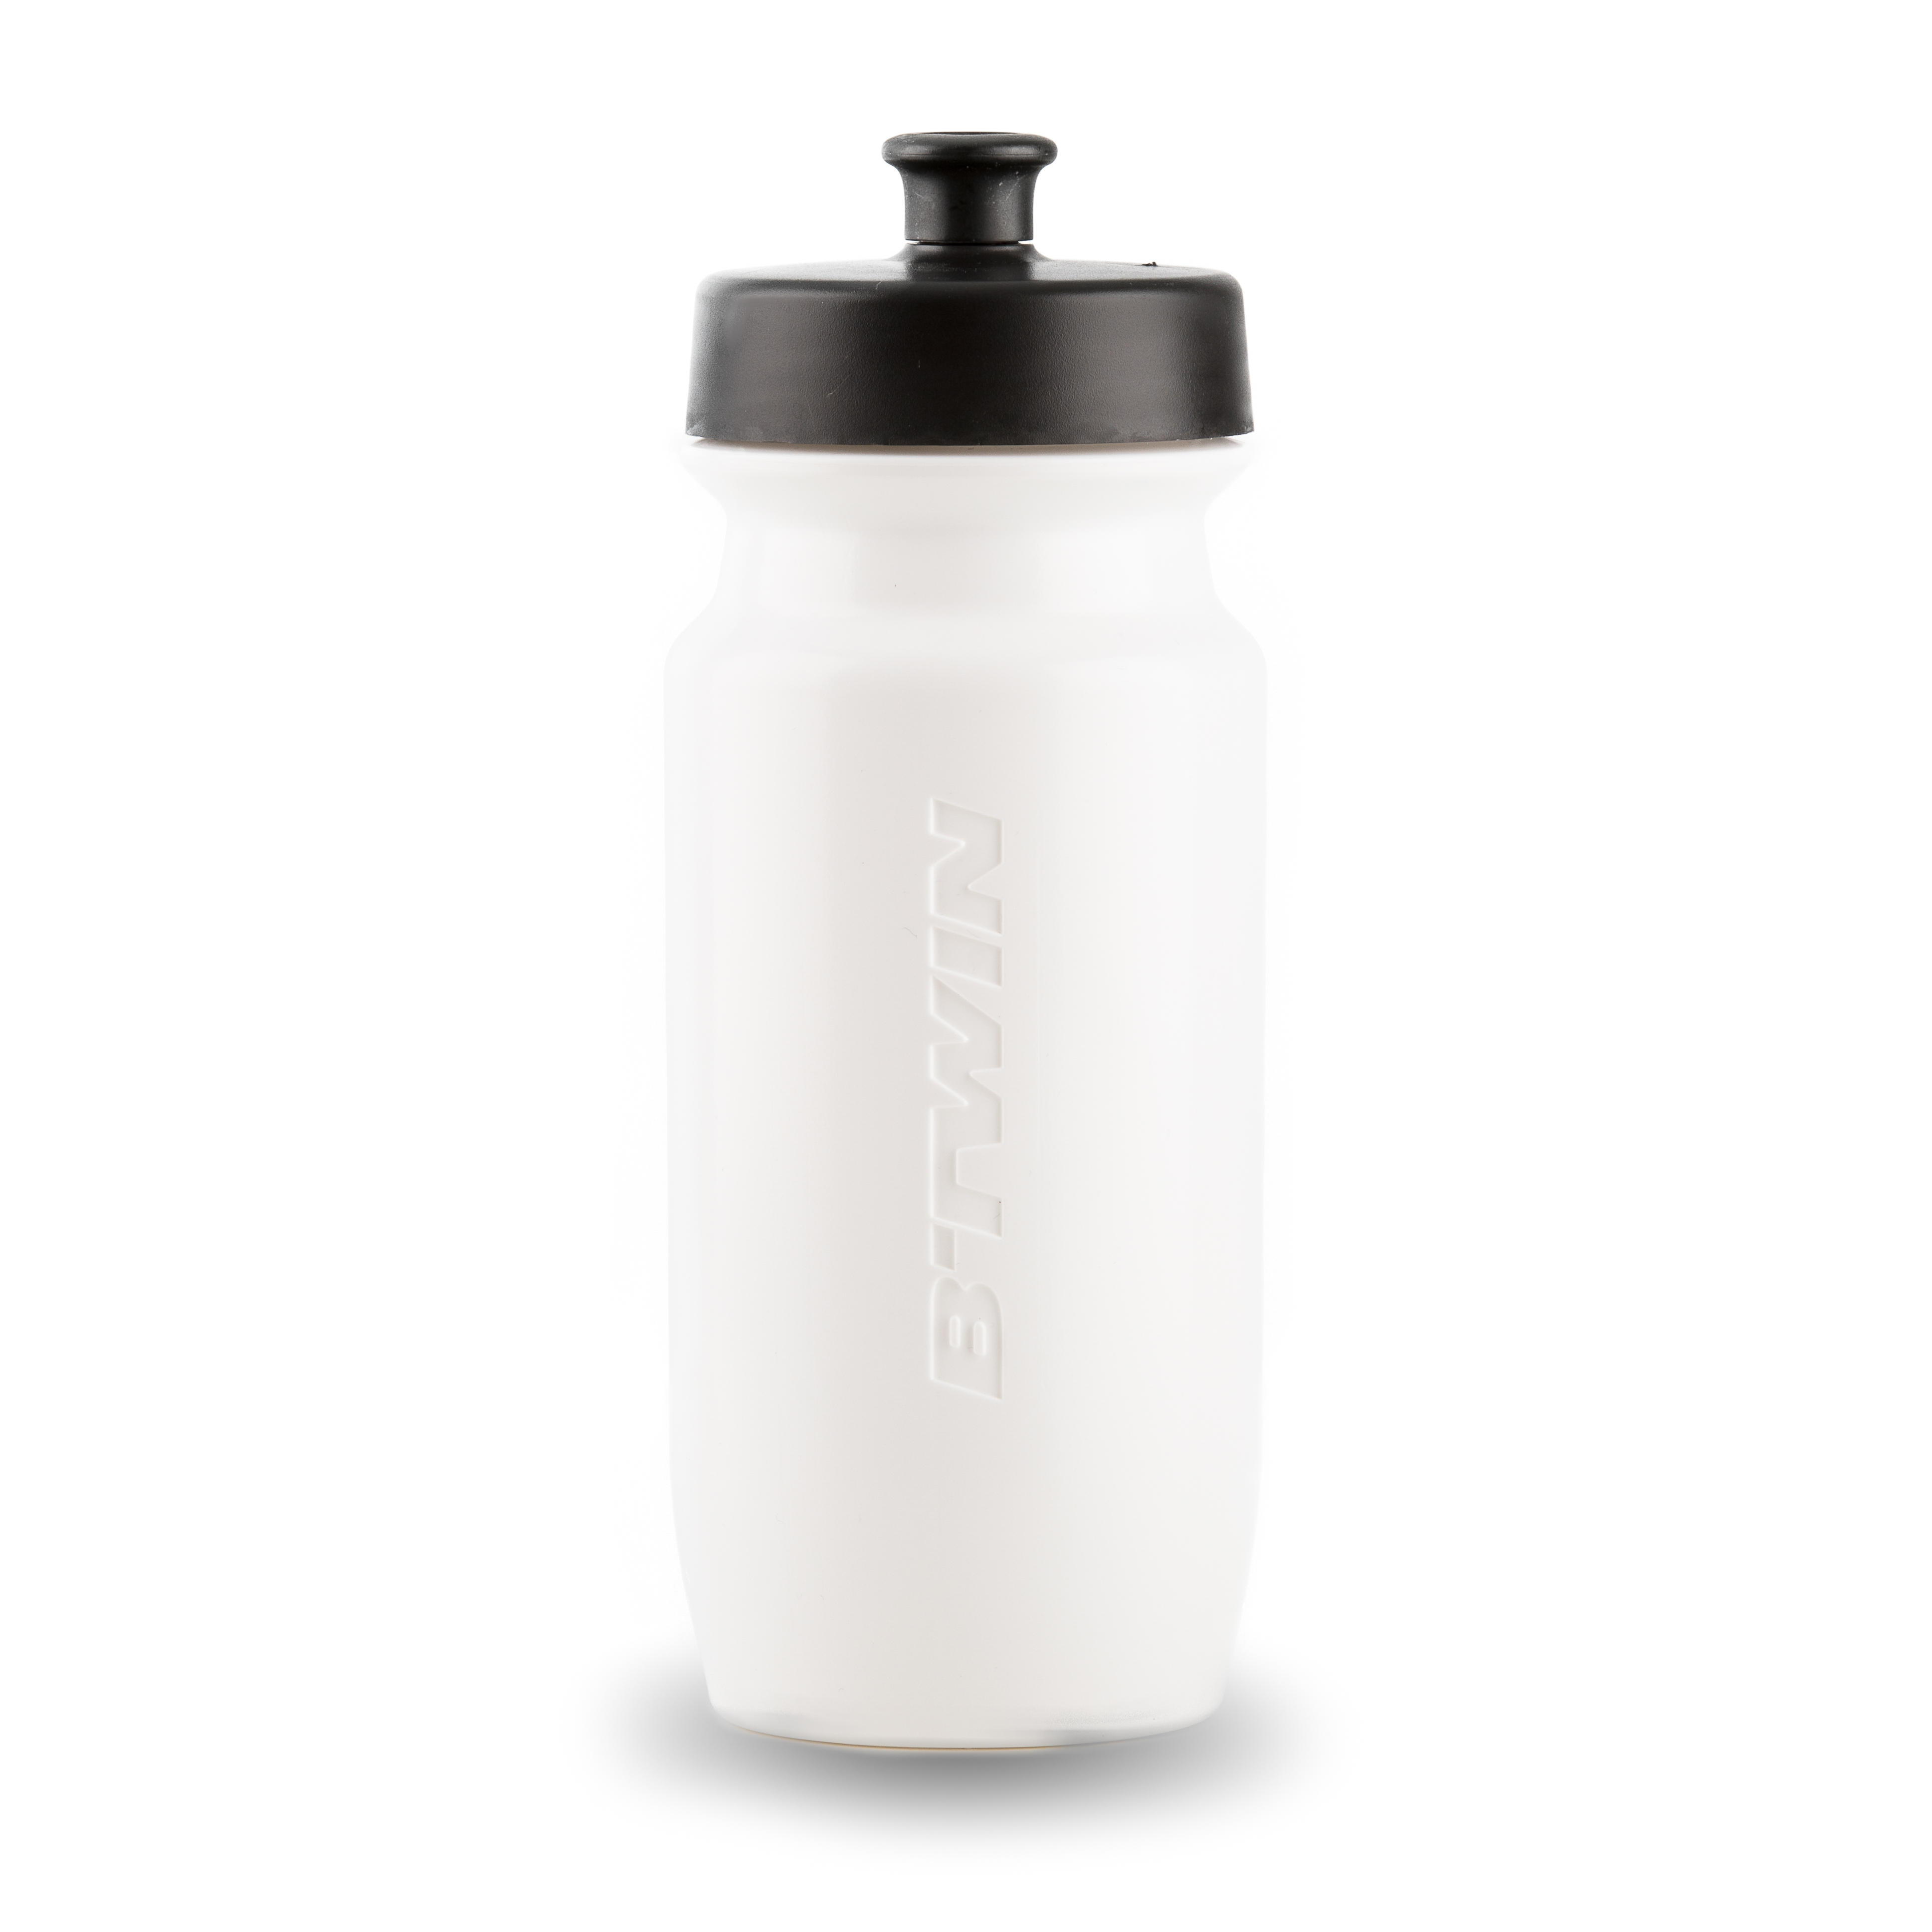 Botella ciclismo 550 ml blanco